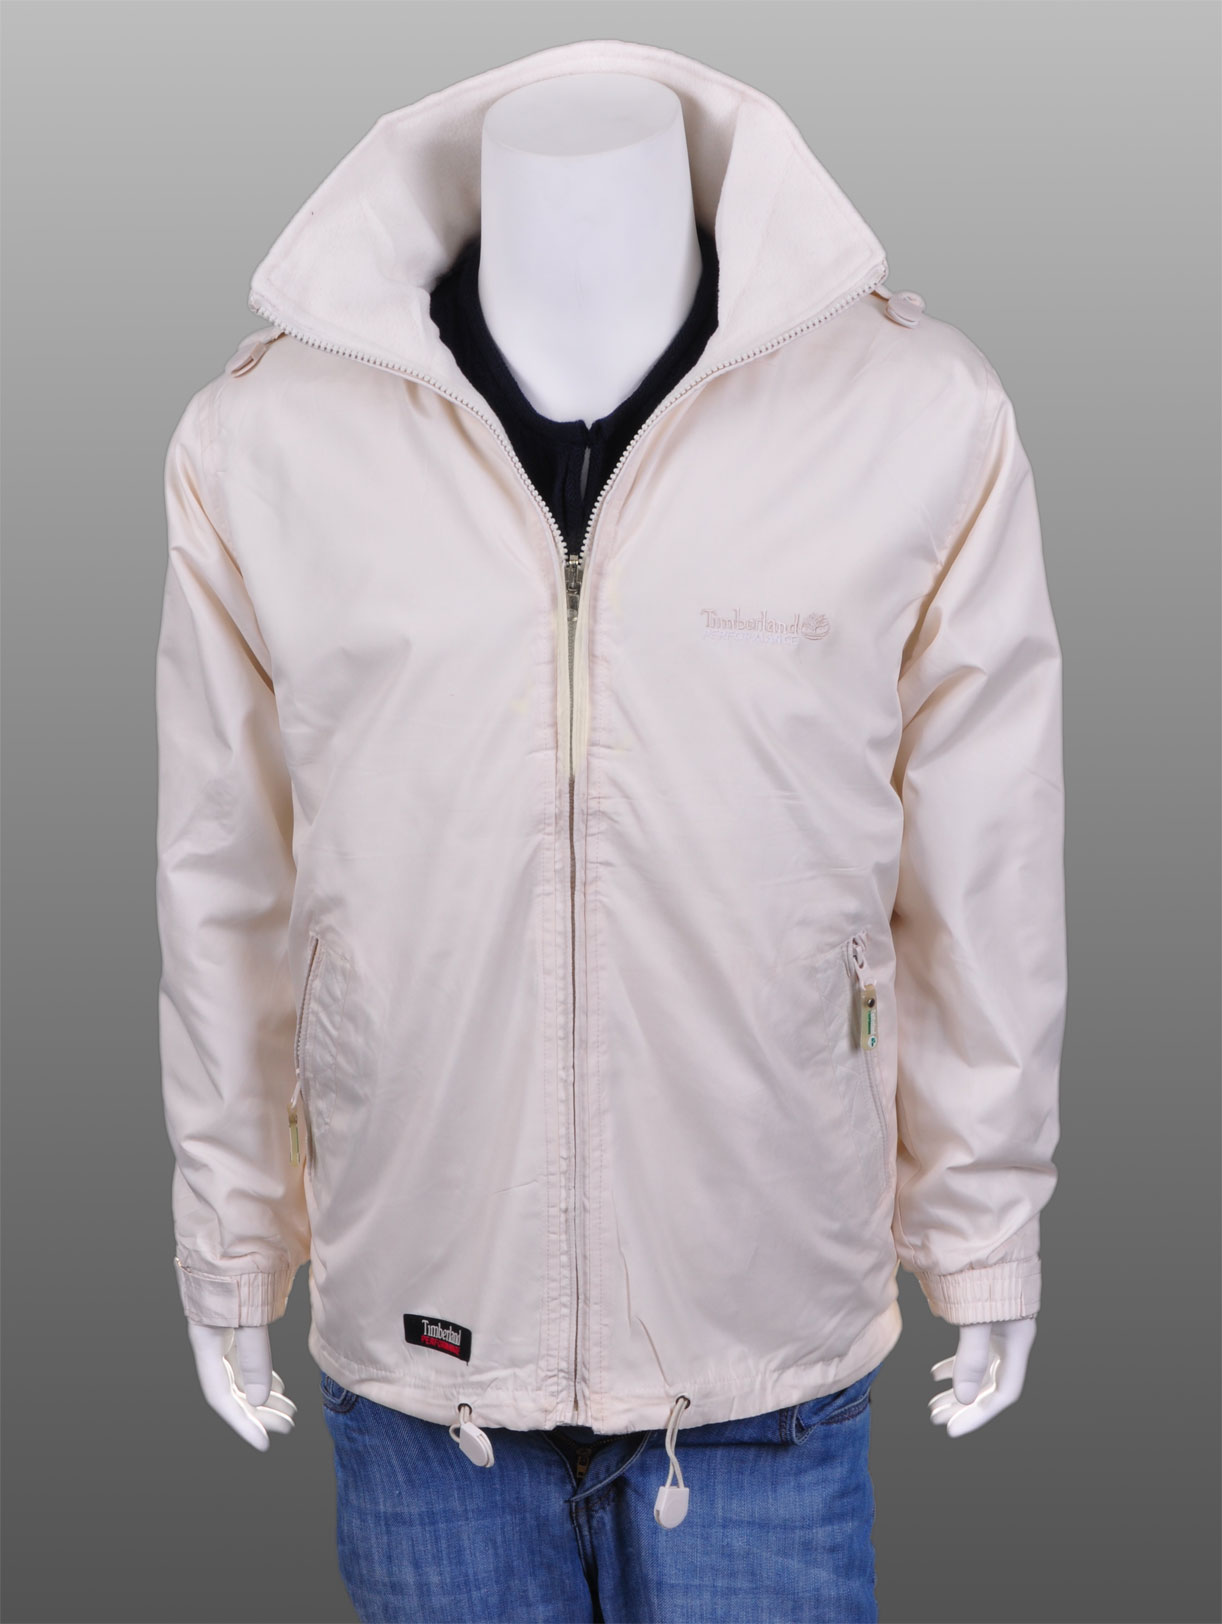 Mens Wind Breaker Waterproof Jacket Coat Beige Sz L